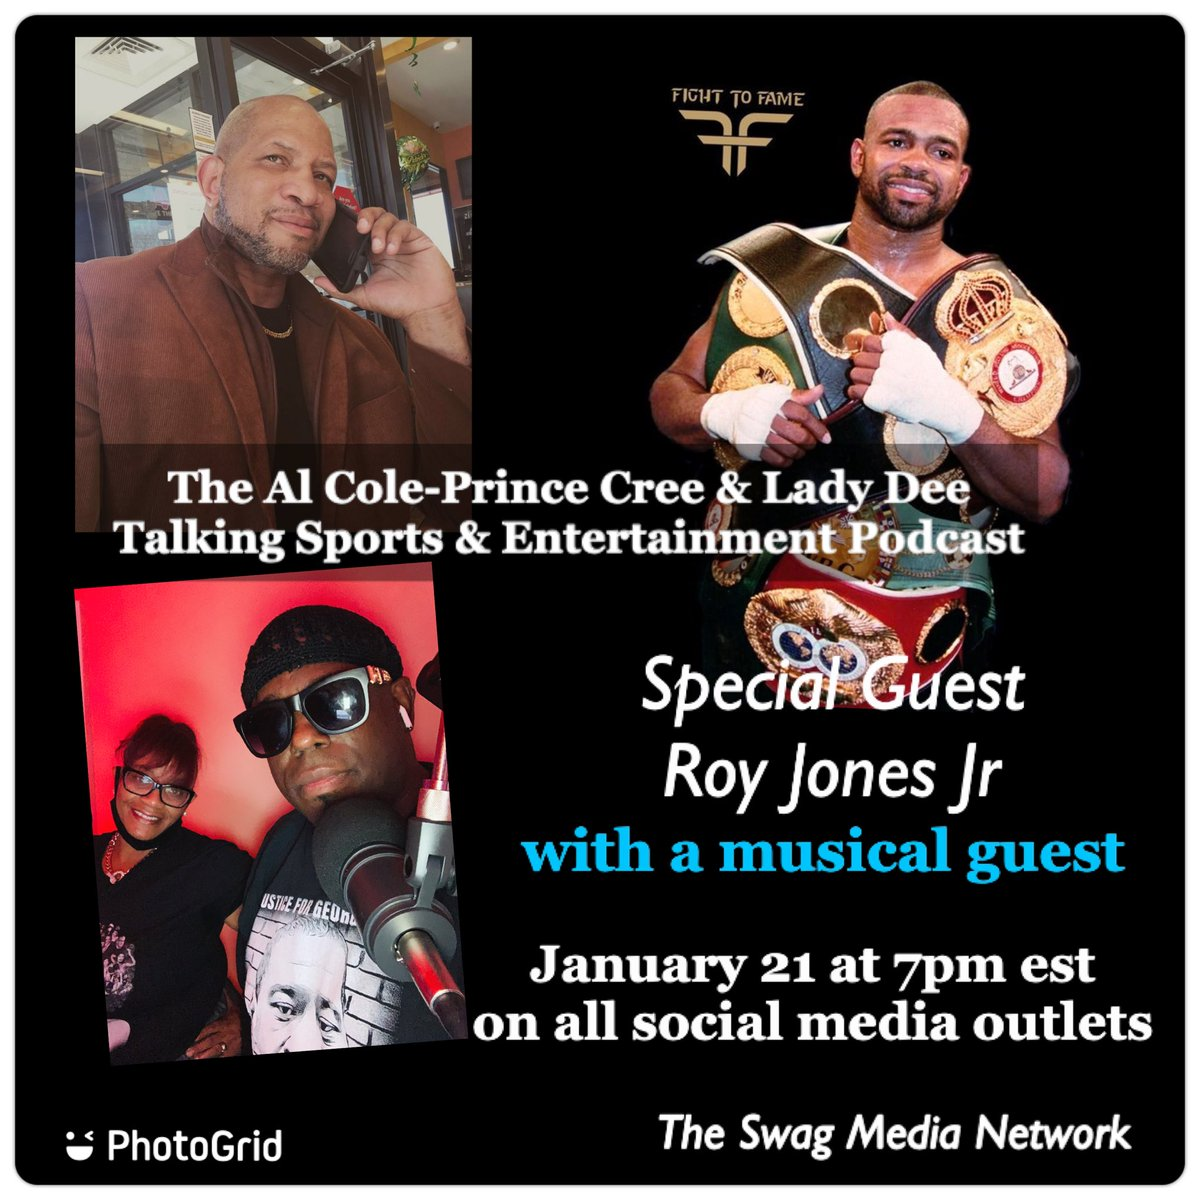 Tune in tomorrow at 7pm right here as we will be streaming live with our special guest @RoyJonesJrFA #boxing #sports #espn #royjonesjr #miketyson #triller